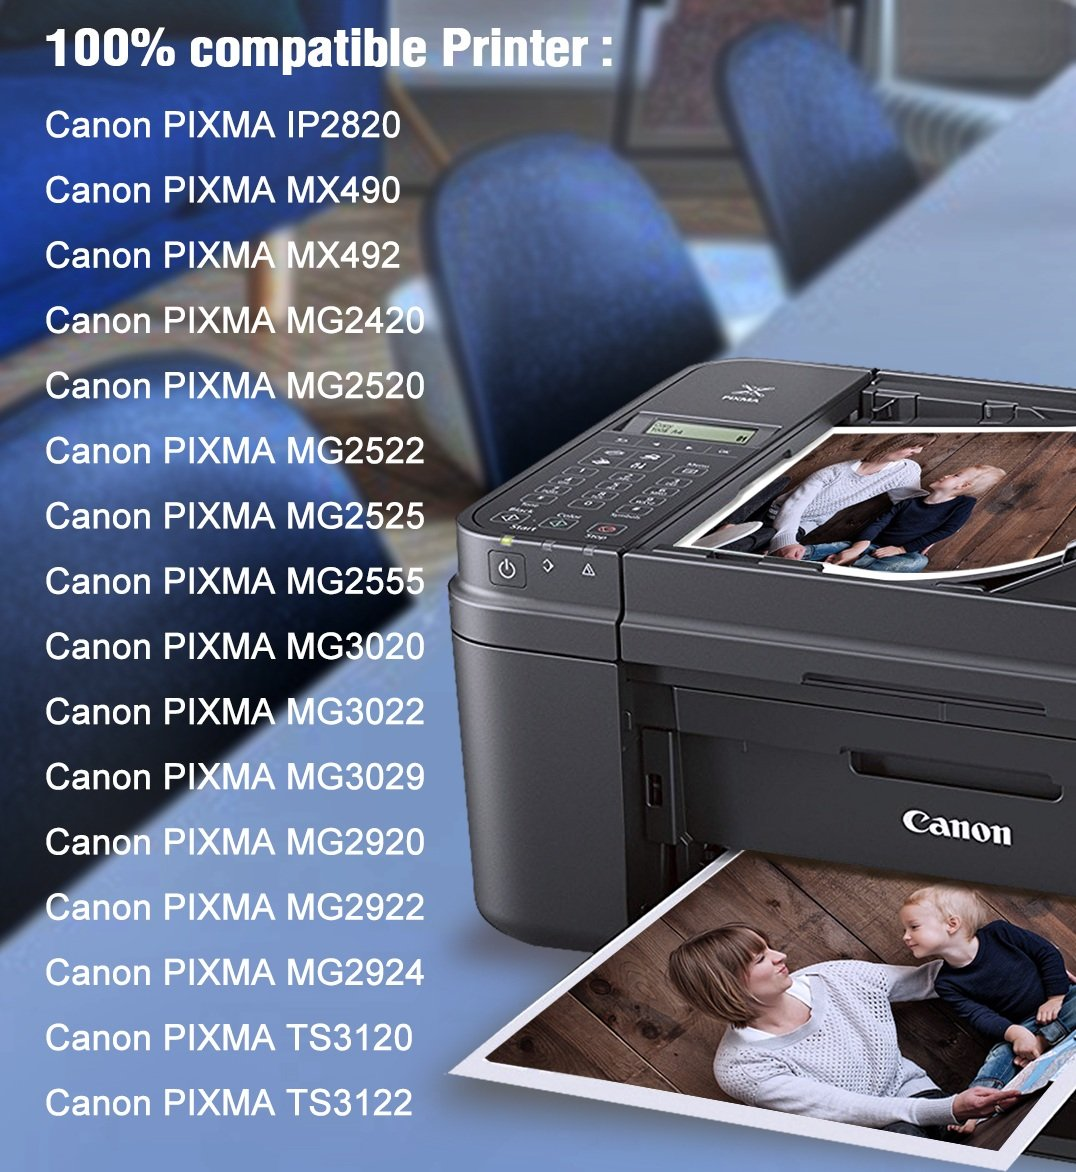 MYTONER Re-Manufactured Ink Cartridge Replacement for Canon PG-245XL  CL-246XL PG-243 CL-244 (1 Black, 1 Tri-Color) for Canon Pixma MX492 MX490  MG2420